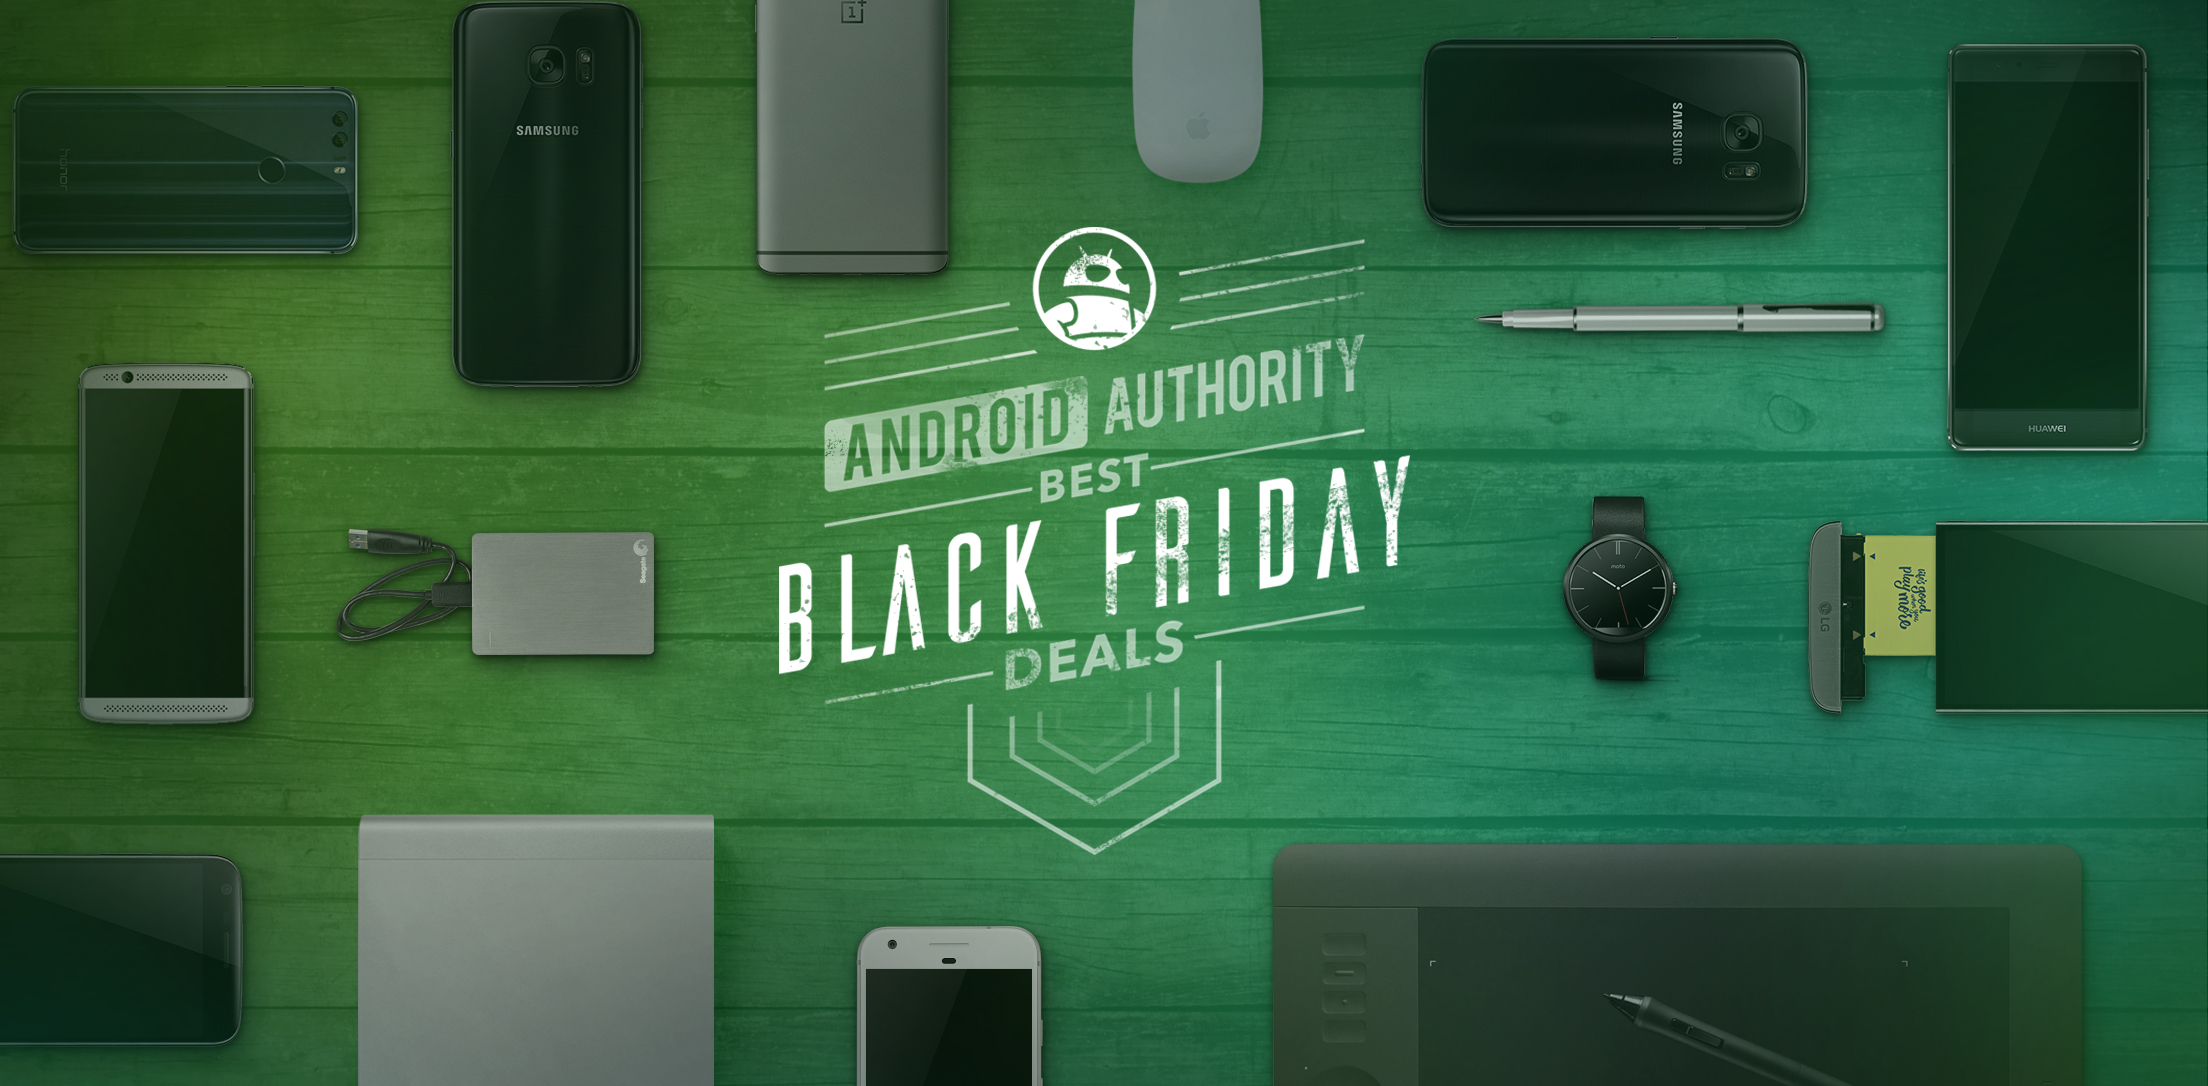 Black Friday Top Deals Our Top 15 Black Friday Tech Deals Android Authority